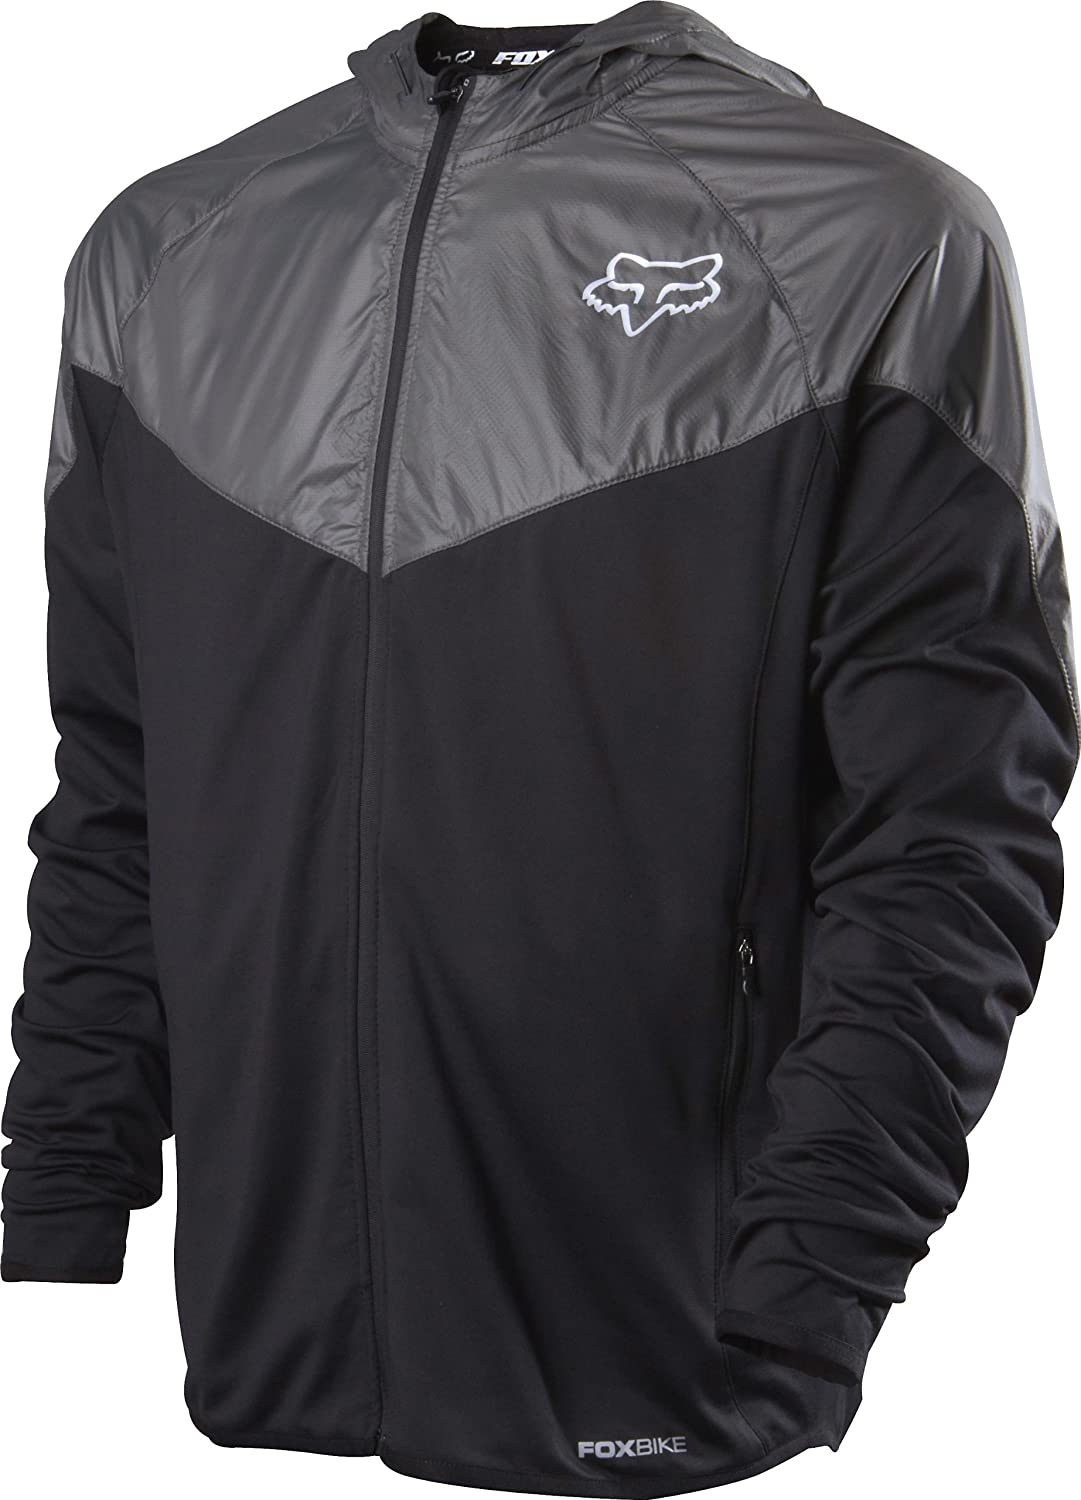 92034585daf chic Fox Head Men's Diffuse Jacket - wadegriffinroofing.com